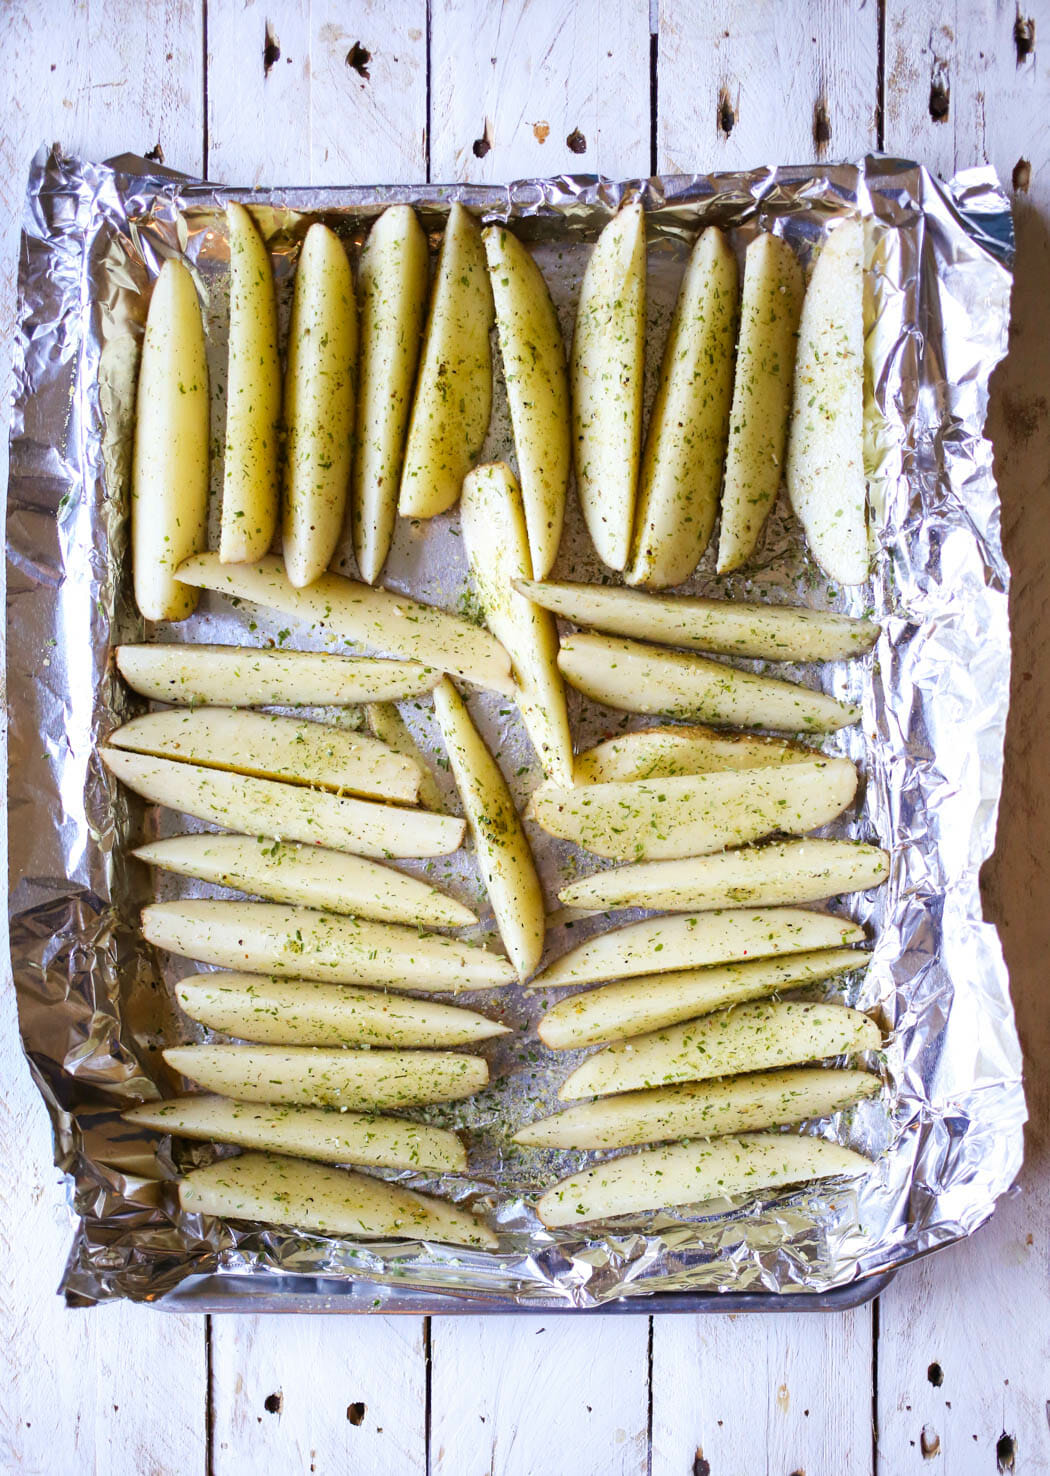 Oven wedges on baking sheet